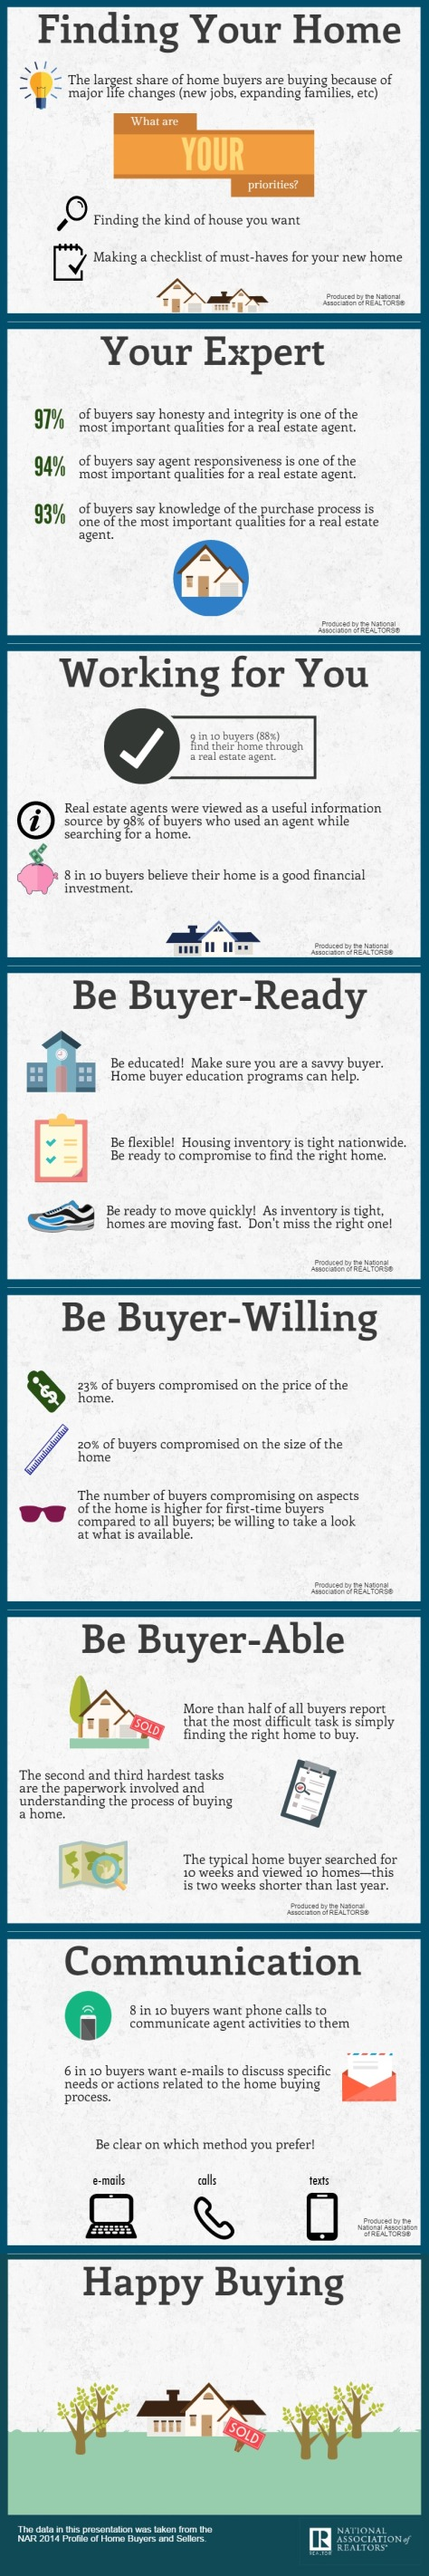 research-marketing-toolkit-buyer-targeted-full-infographic